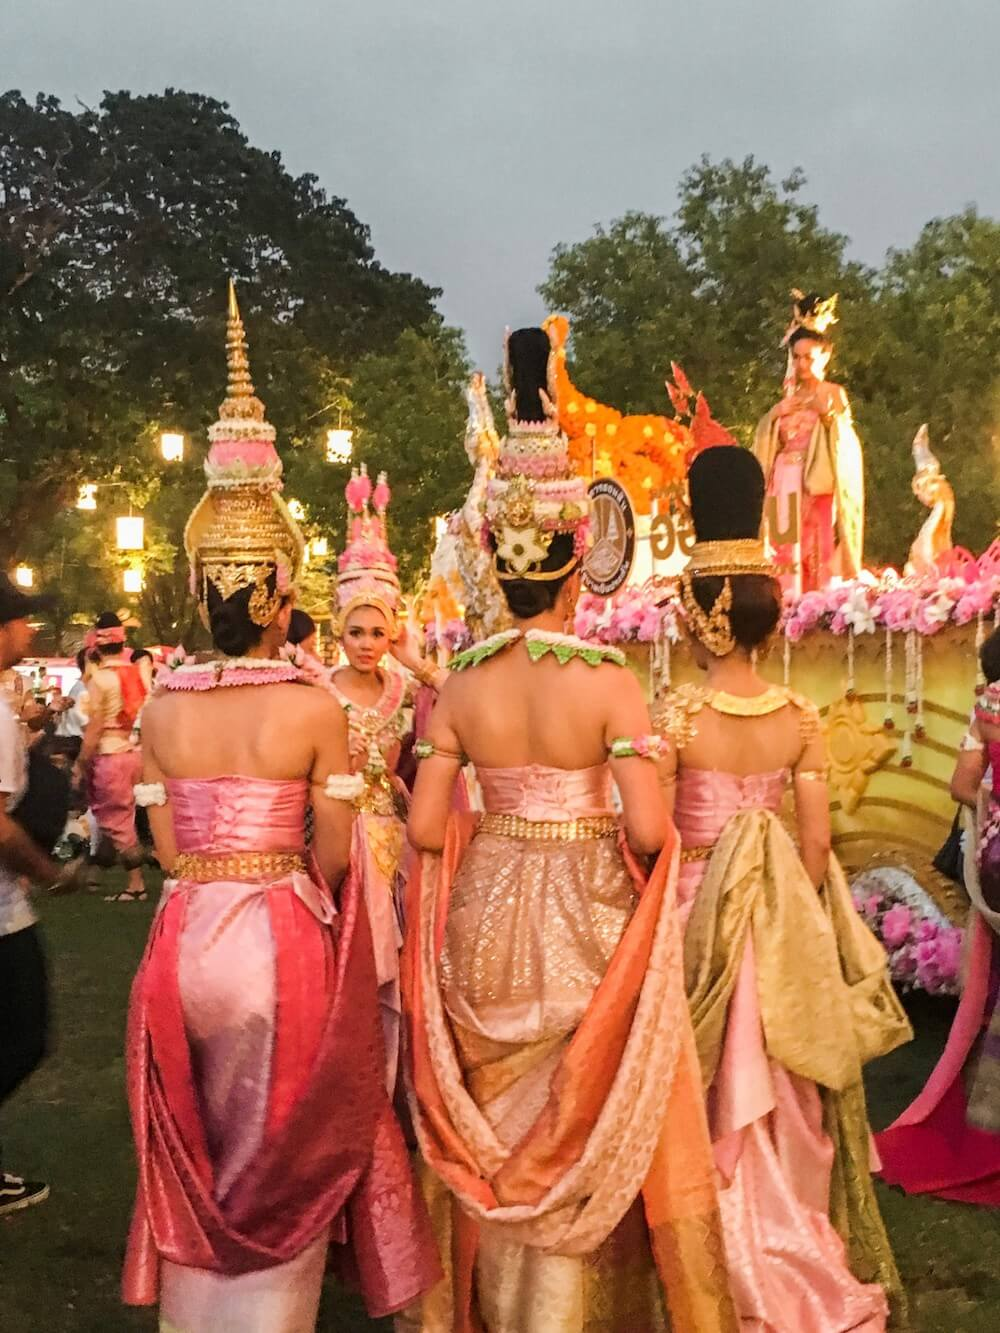 Loi Krathong celebration in Sukhothai, Thailand | Moon & Honey Travel